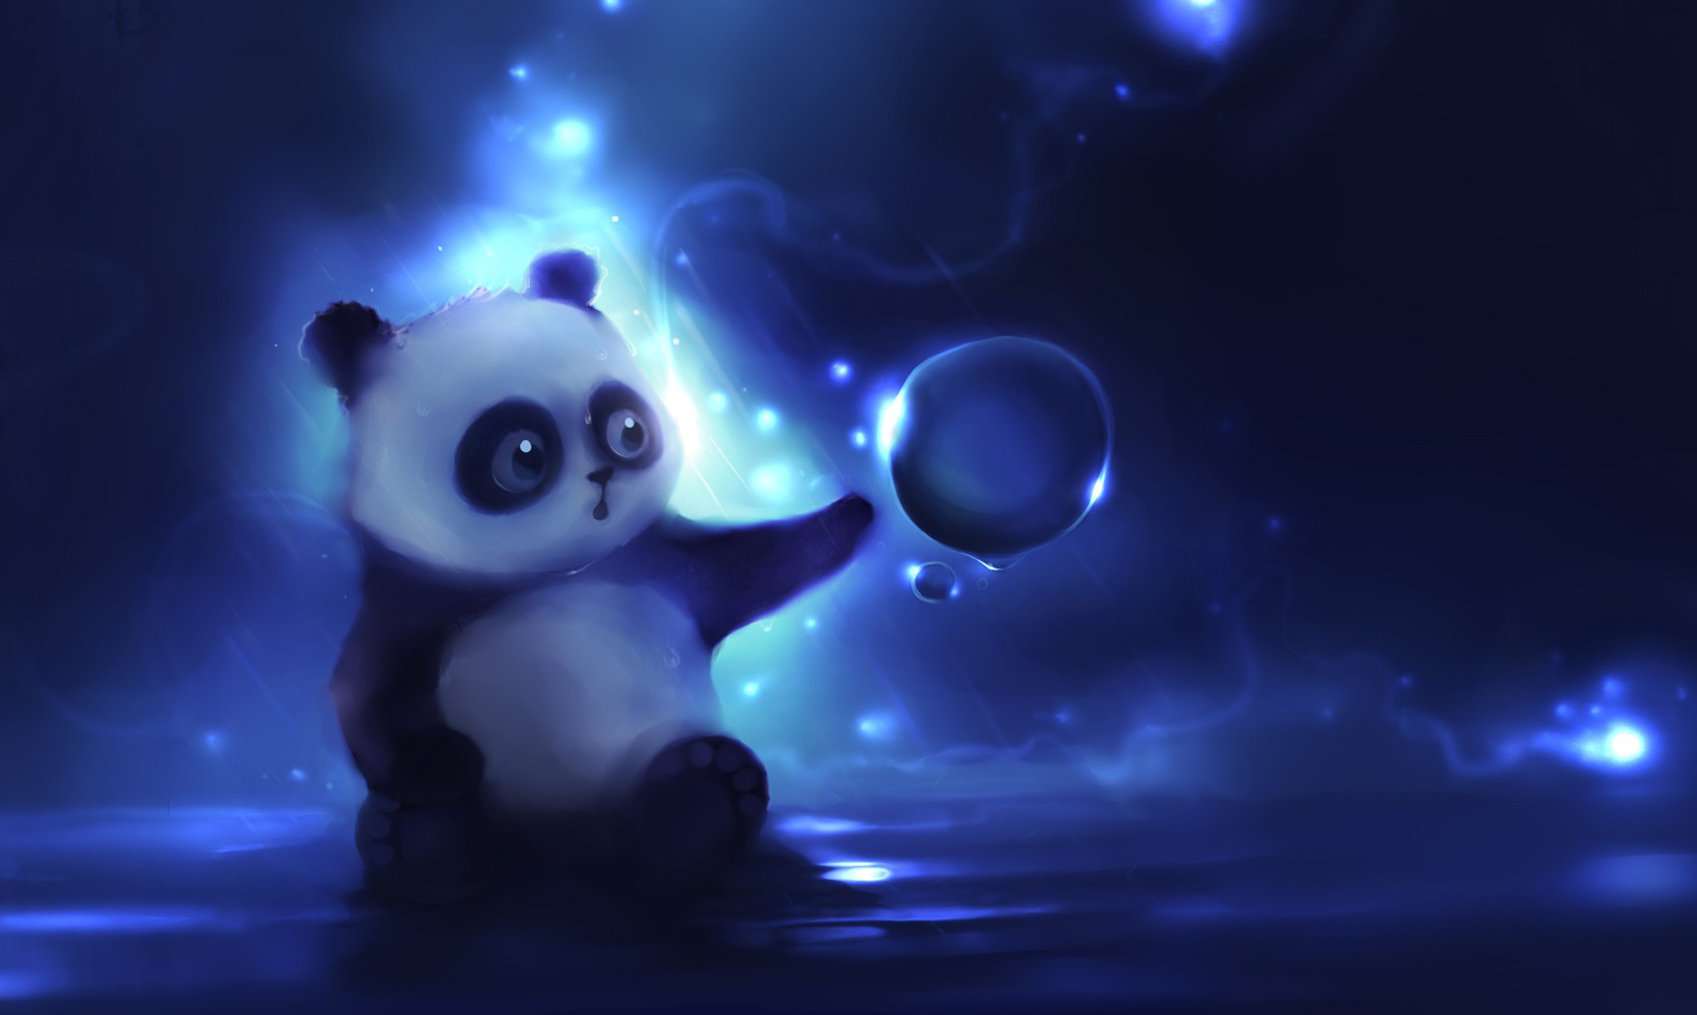 Cute Cool Wallpapers (56 Wallpapers)